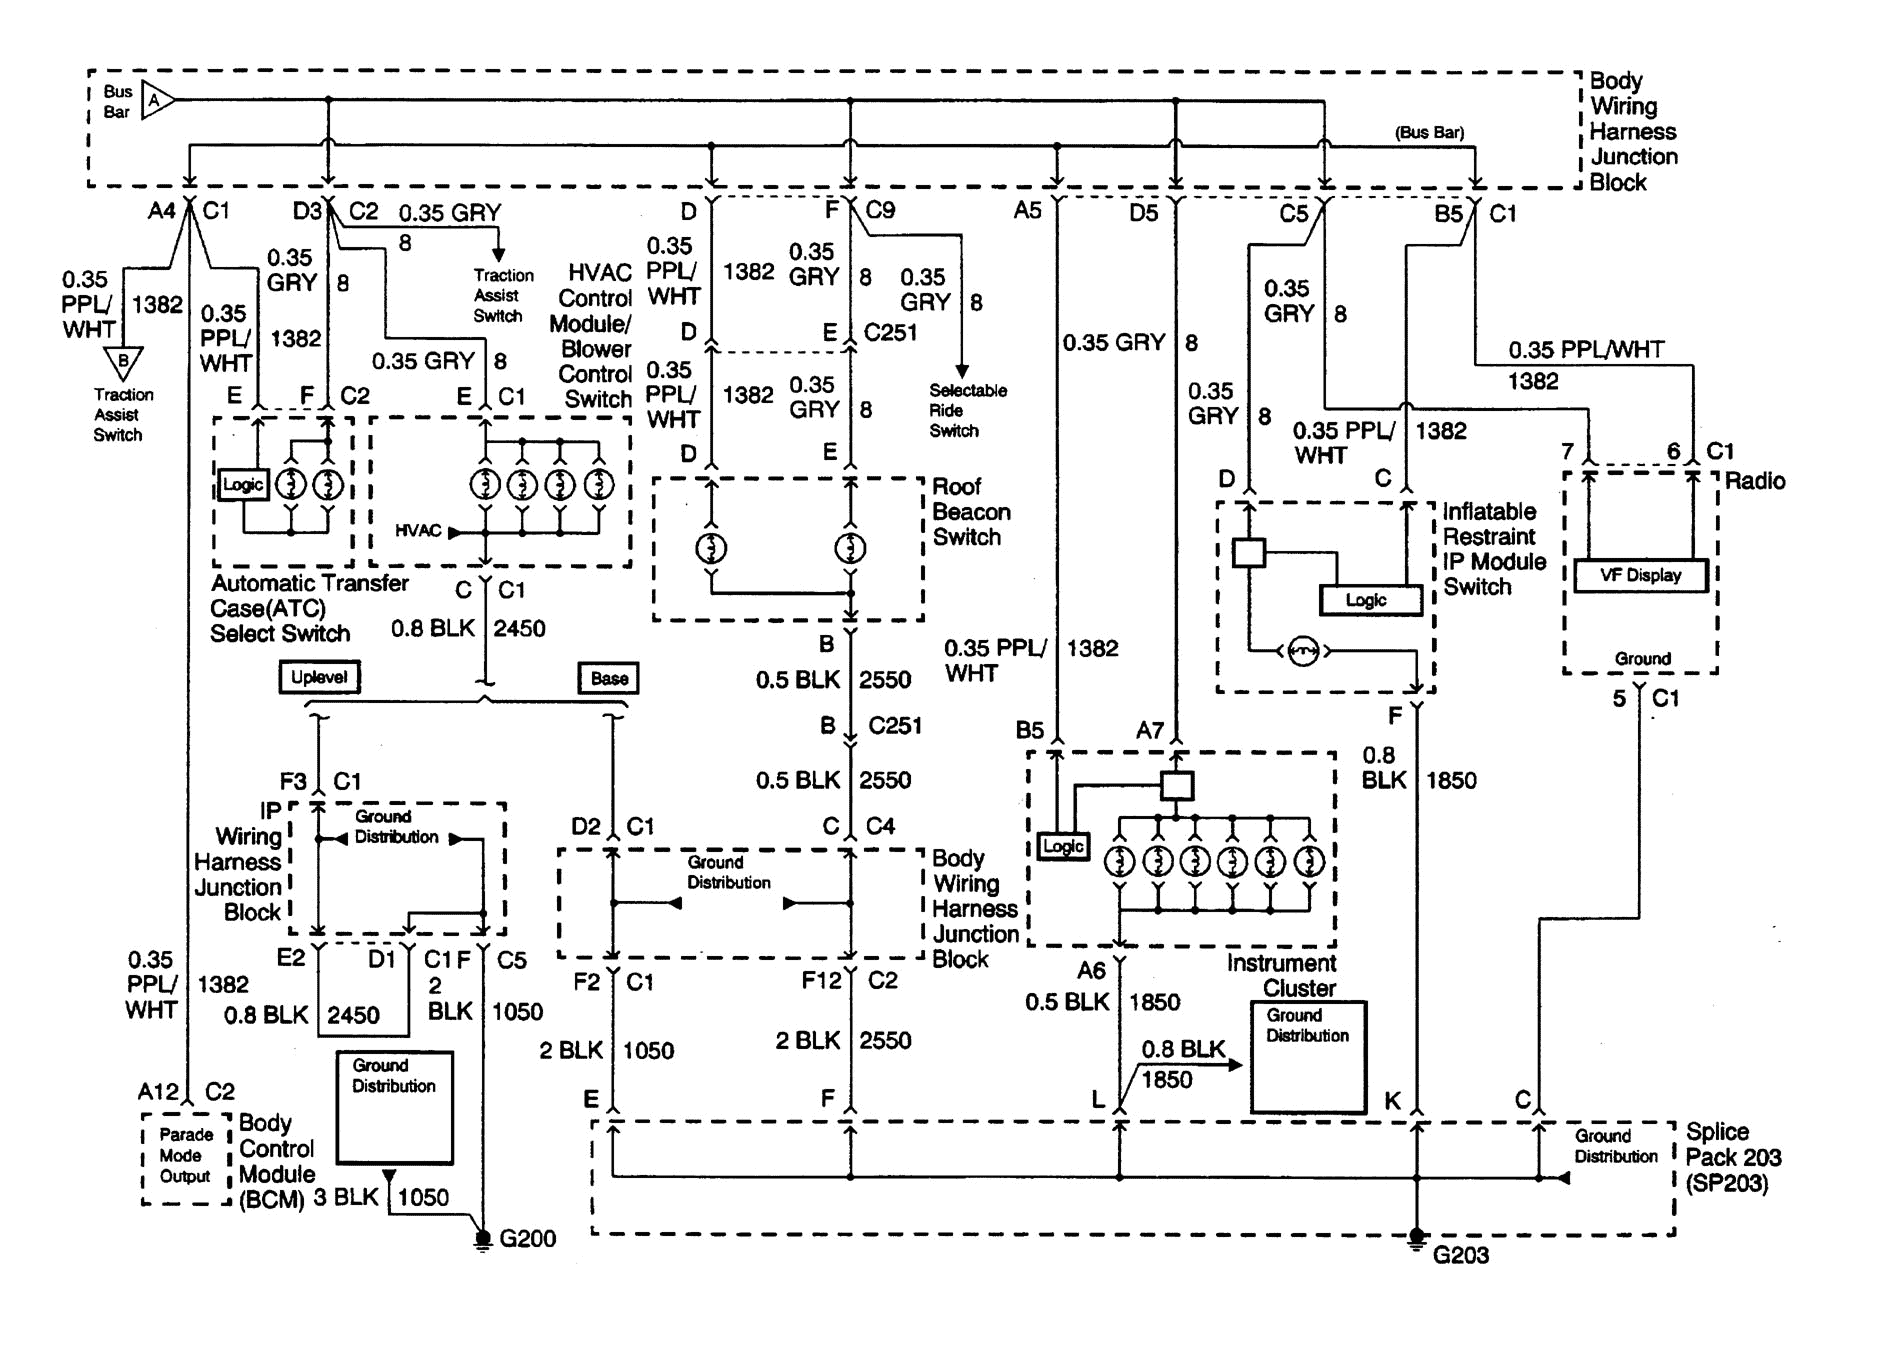 [DIAGRAM] 2003 Chevy Silverado 2500 Wiring Diagram FULL